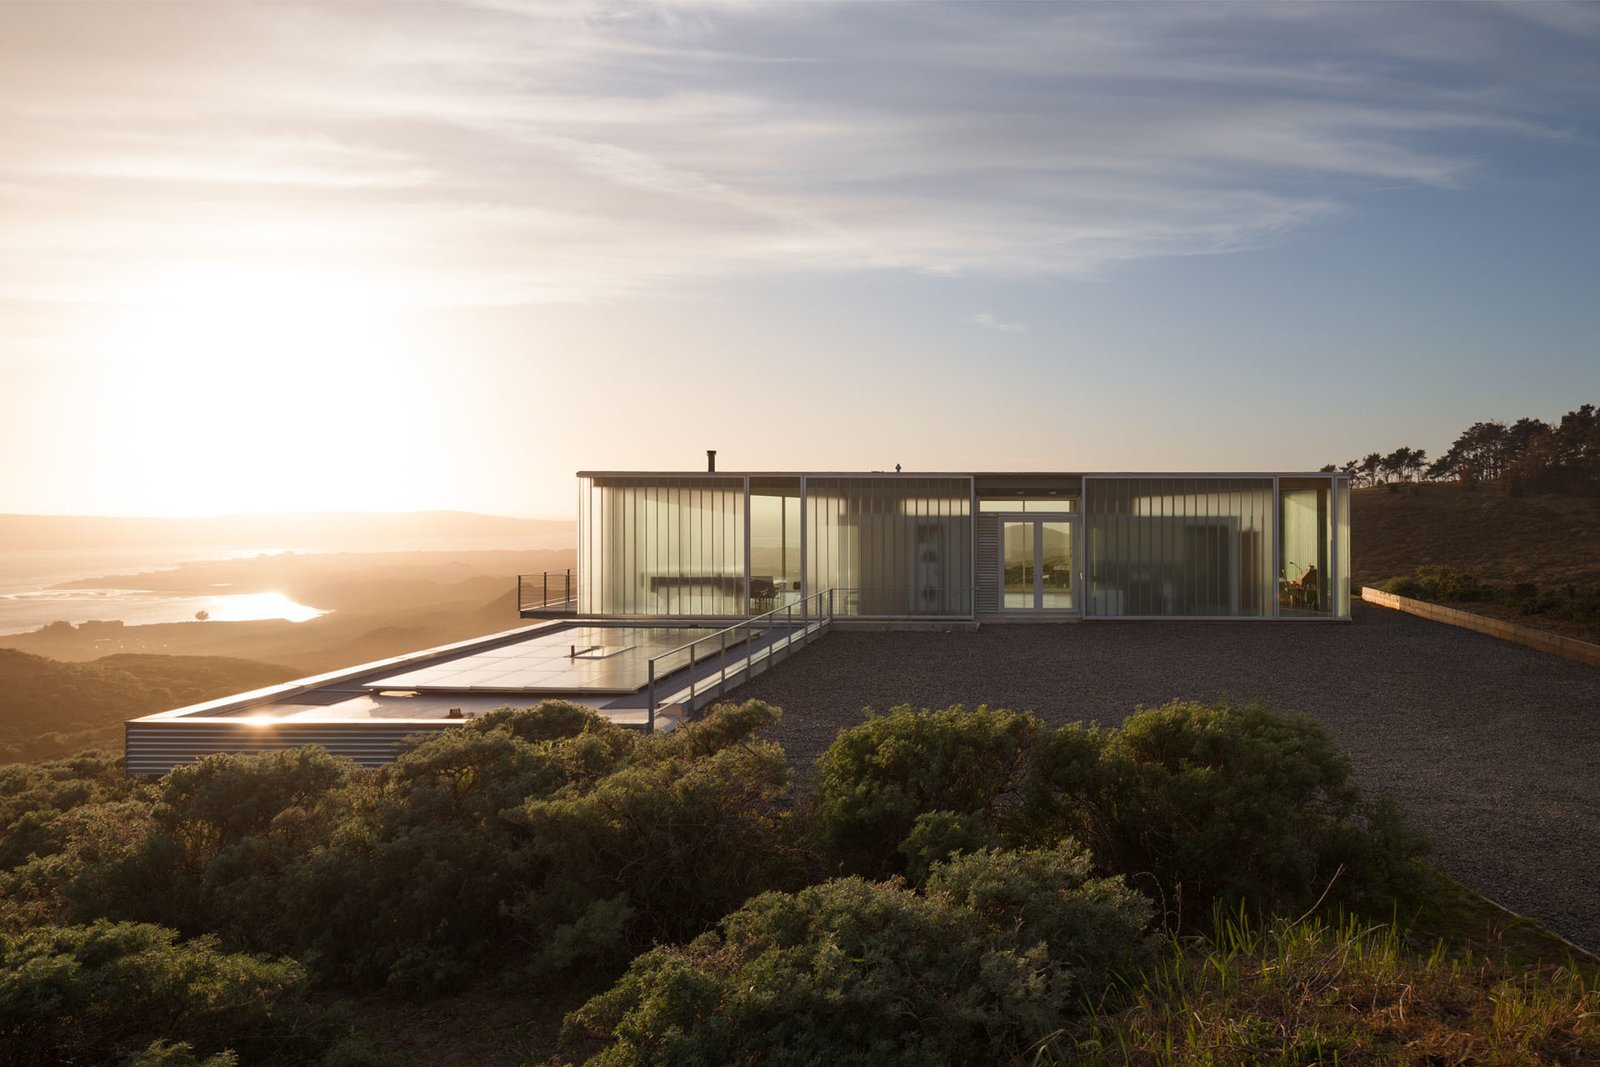 Photo 5 of 5 in Glass House on California's North Coast